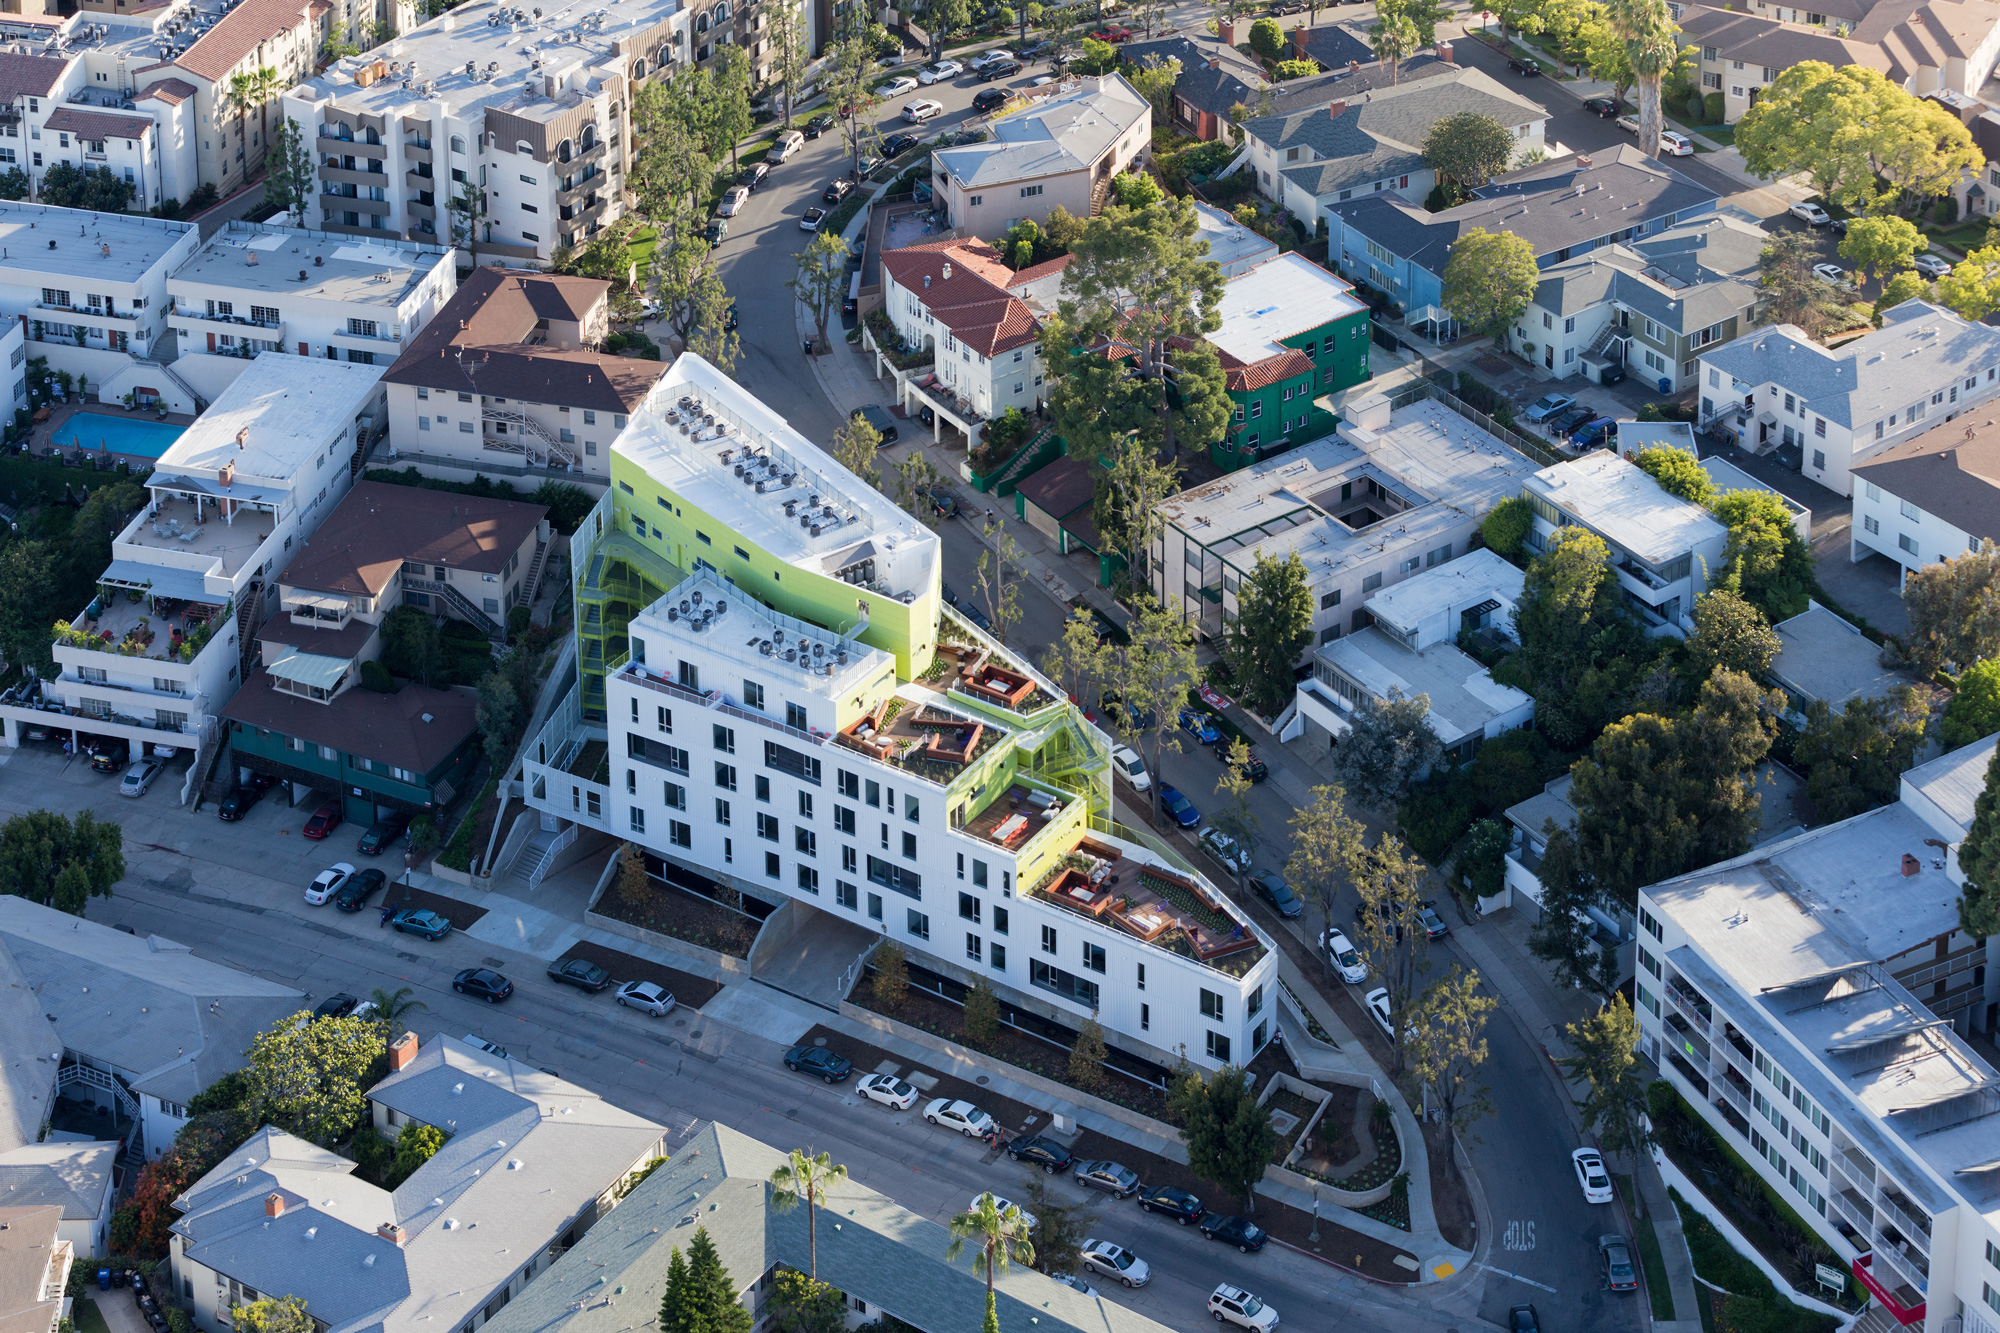 UCLA ADJACENT STUDENT AND FACULTY HOUSING, LOHA © Iwan Baan